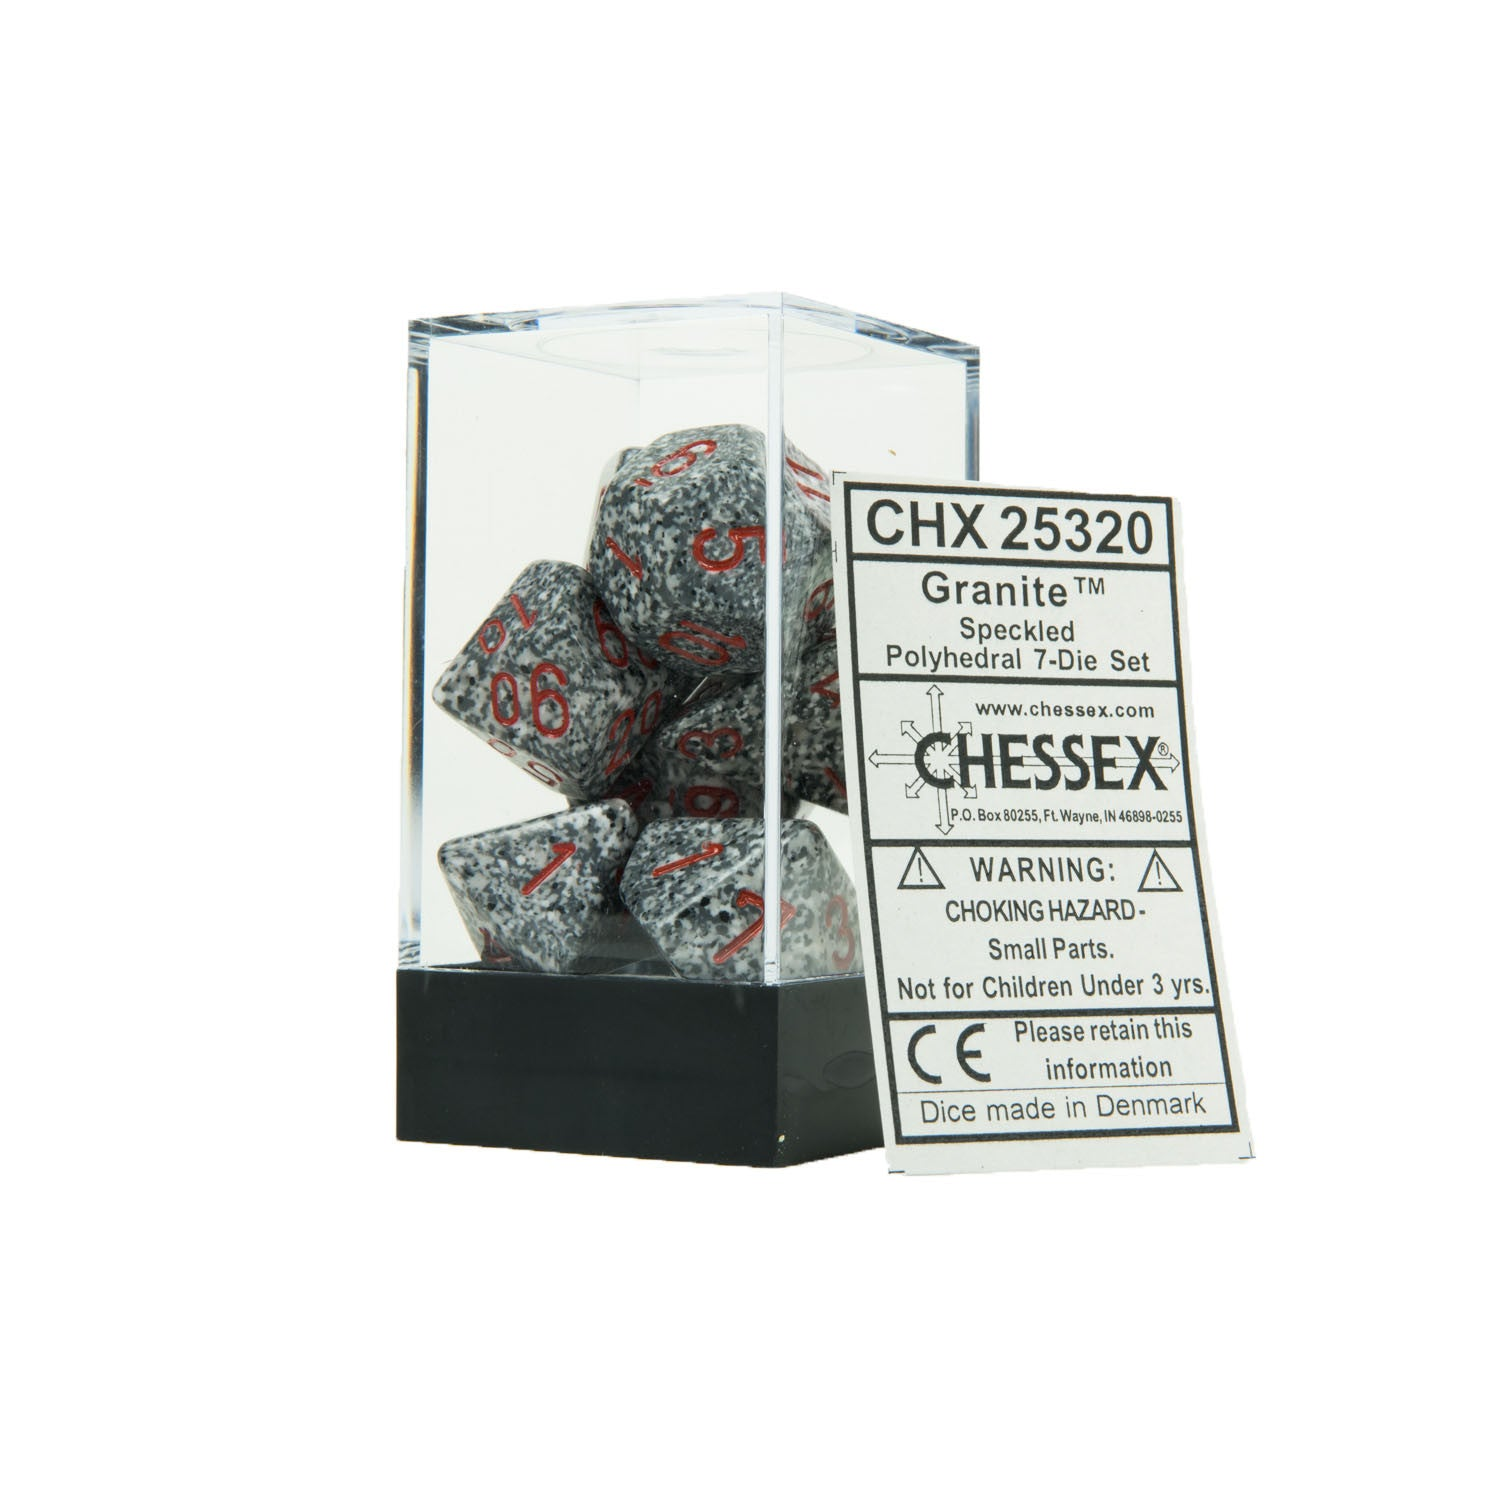 Chessex CHX25320 Granite™ Speckled Polyhedral Dice Set